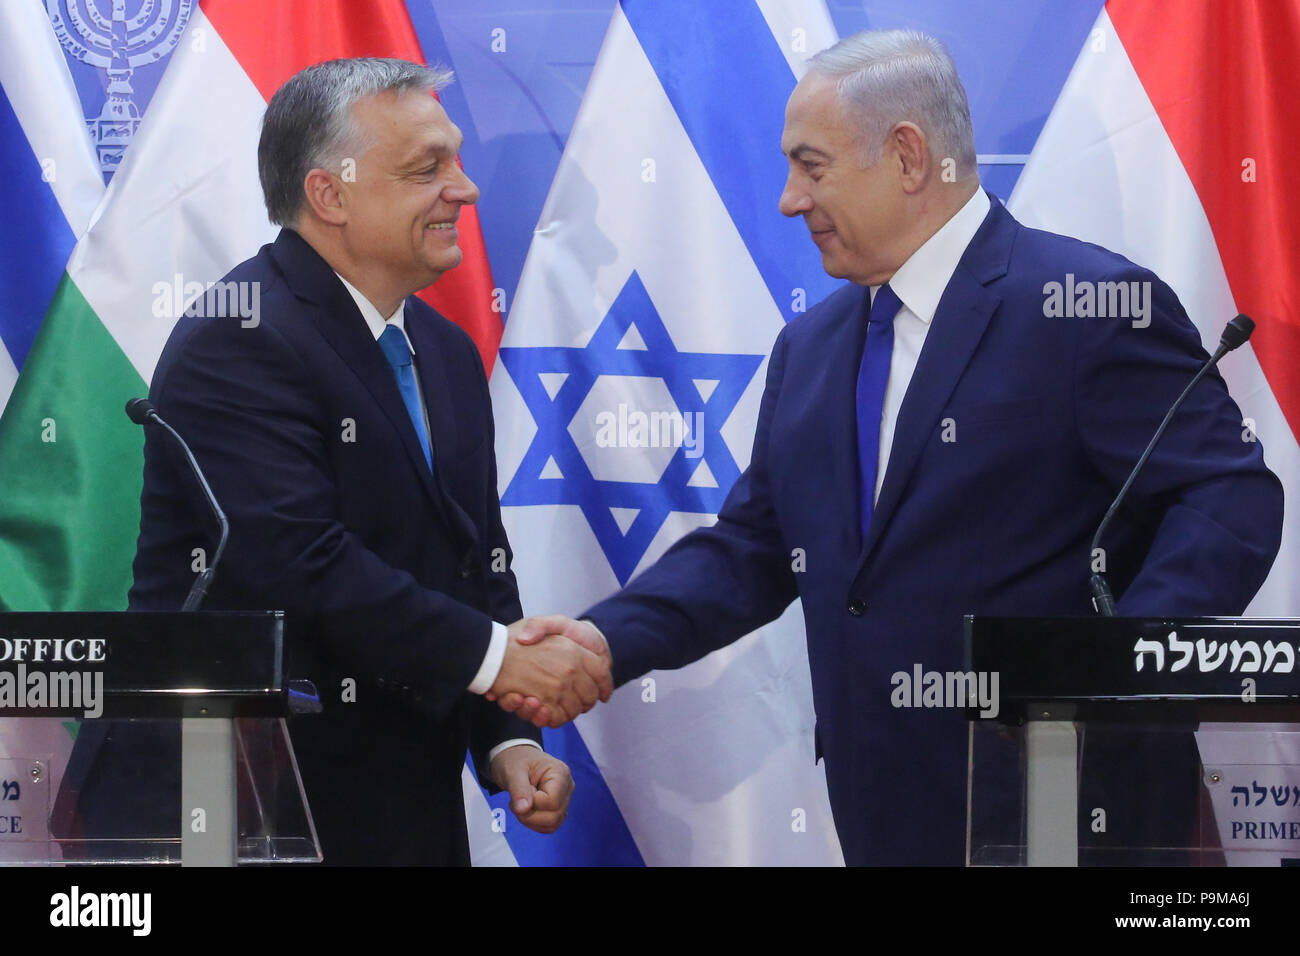 (180719) -- JERUSALEM, July 19, 2018 (Xinhua) -- Israeli Prime Minister Benjamin Netanyahu (R) shakes hands with Hungarian Prime Minister Viktor Orban during a joint press conference in Jerusalem, on July 19, 2018. Viktor Orban, known for his nationalist policies that have raised worries among Hungary's Jewish community, pledged 'zero tolerance' for anti-Semitism on a visit to Israel Thursday. (Xinhua/JINI/Marc Israel Sellem) - Stock Image